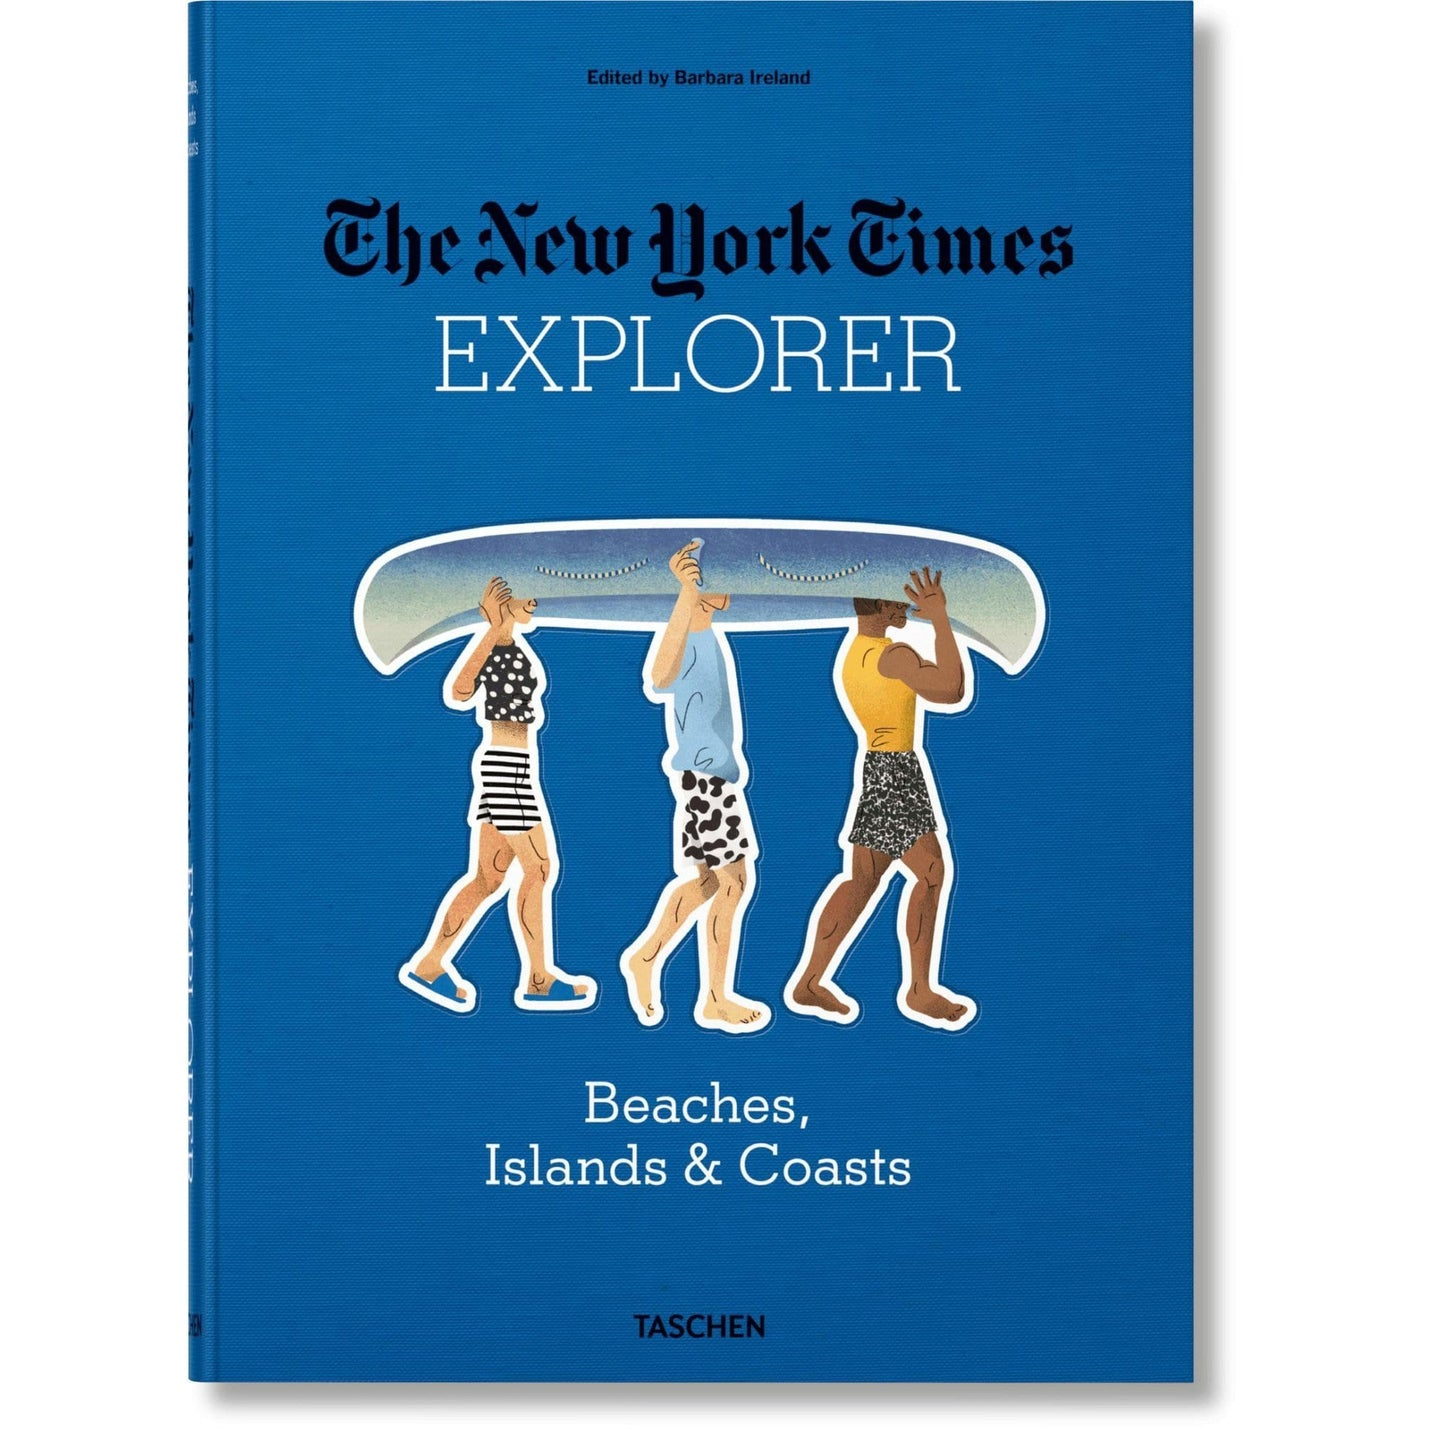 Taschen NYT Explorer - Beaches, Islands & Coasts / Neighborhood Goods